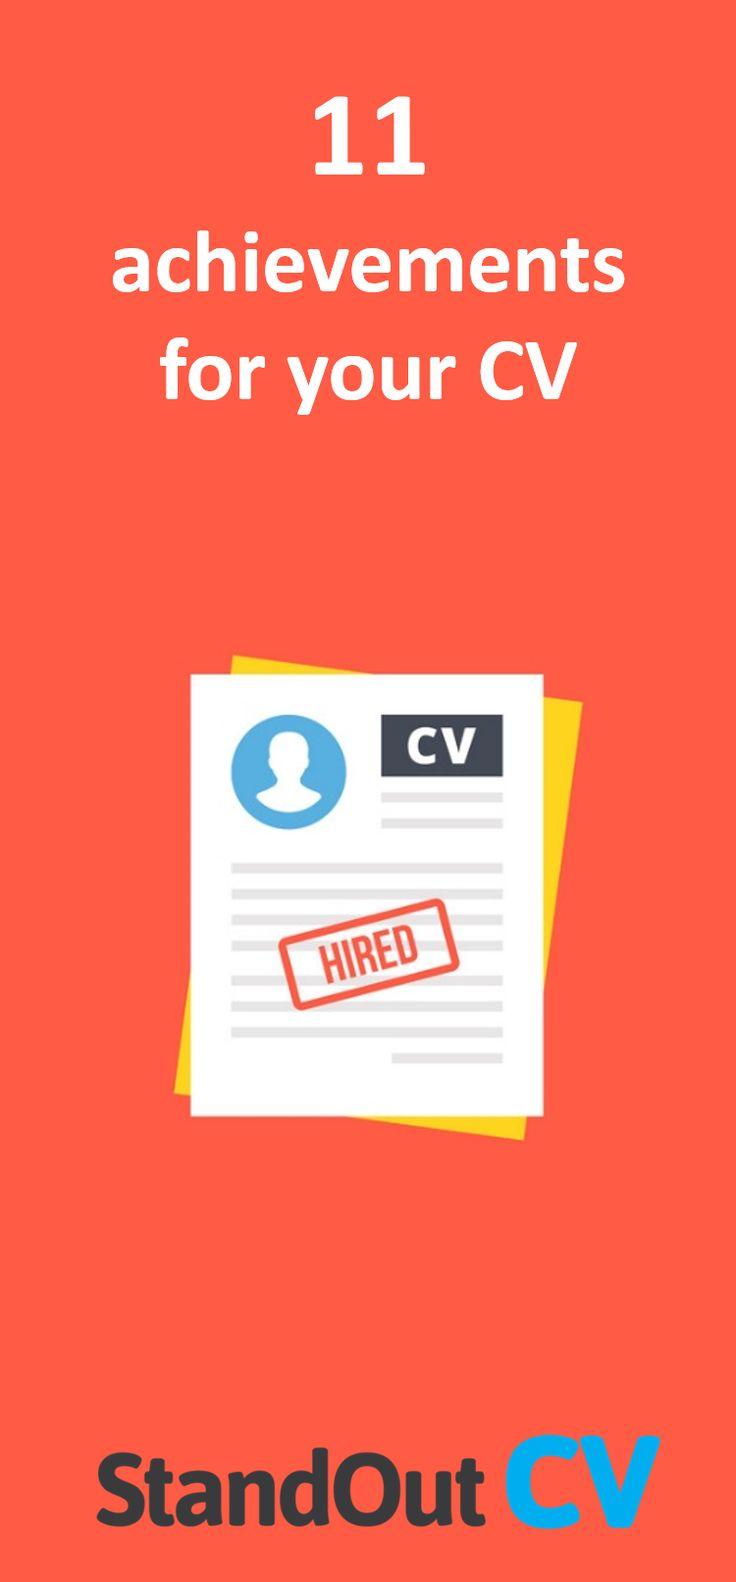 How to add achievements to your cv and 11 examples of cv